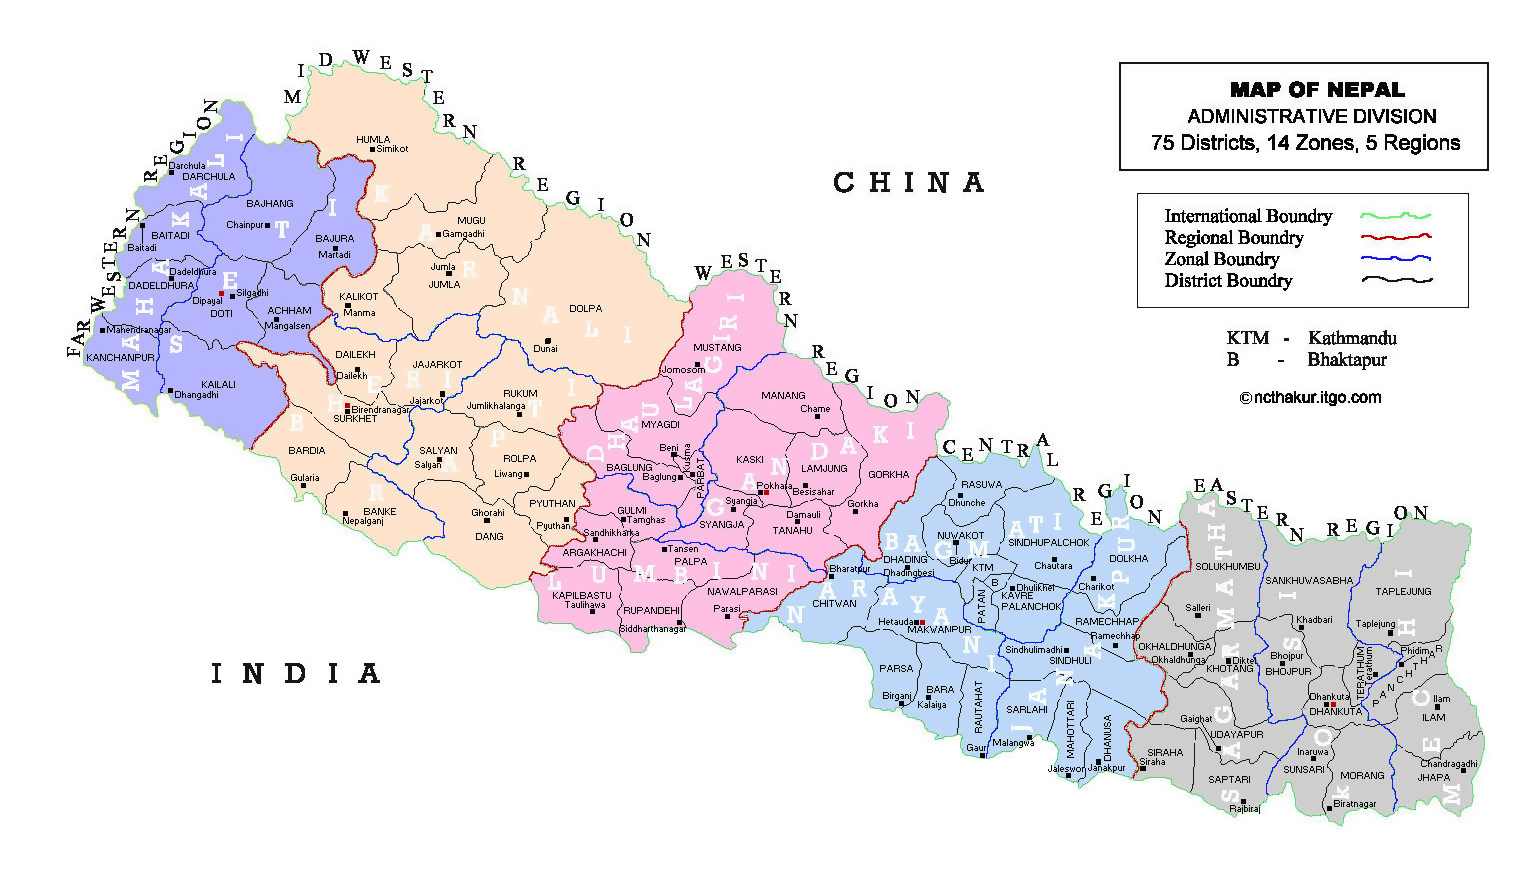 Maps of Nepal | Detailed map of Nepal in English | Tourist map of ...